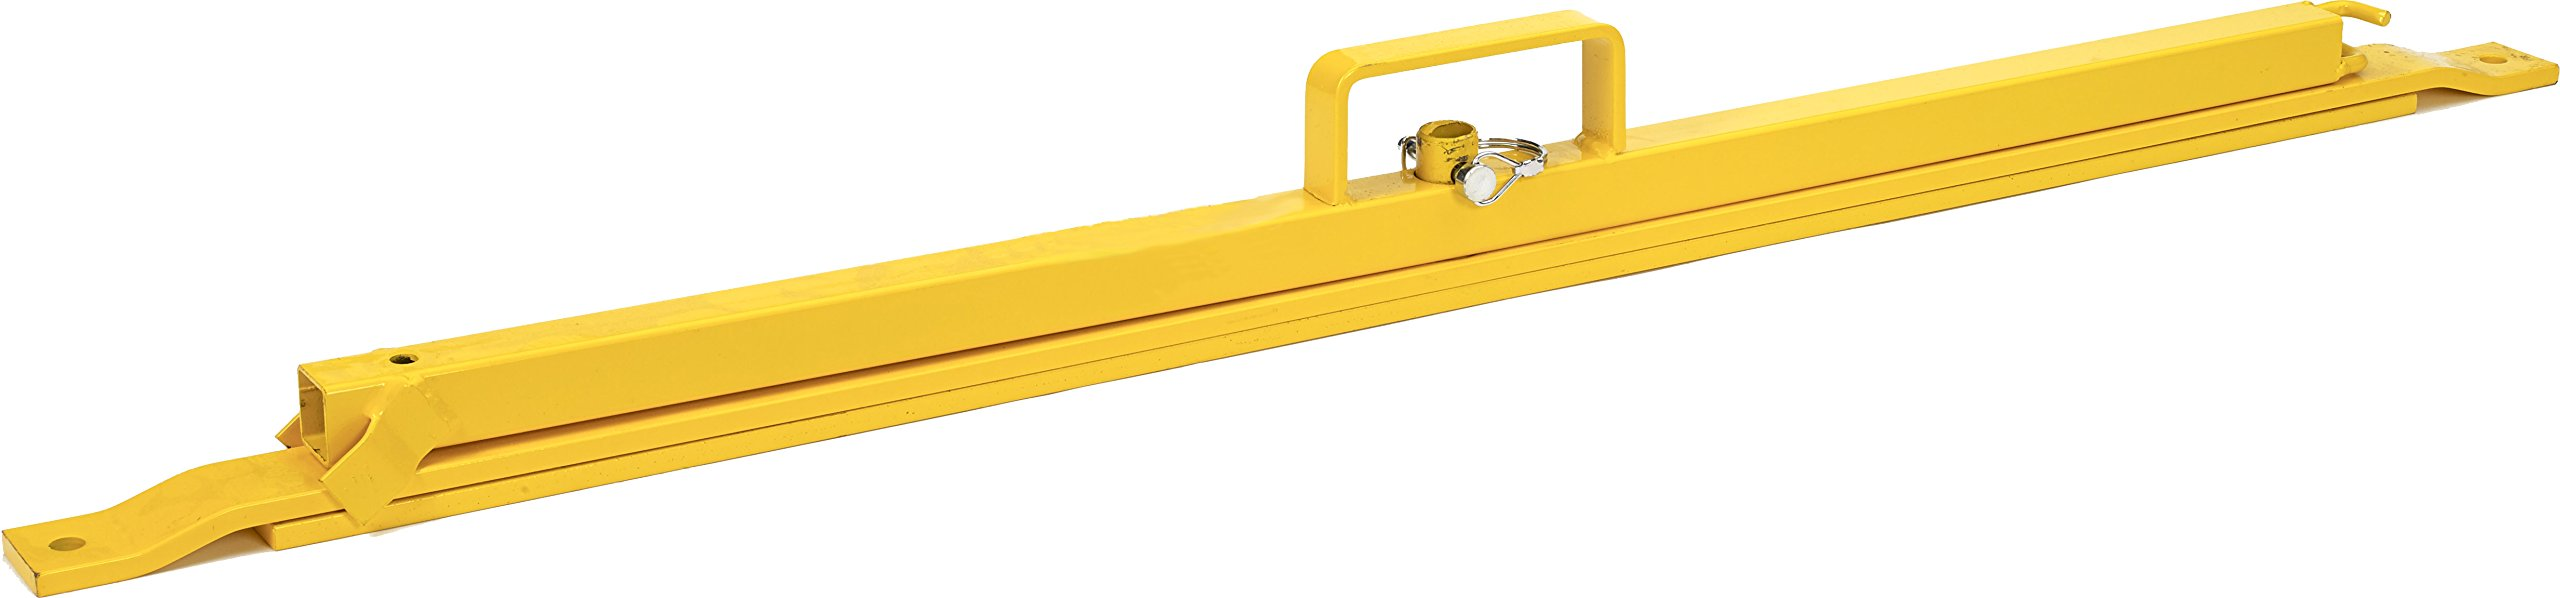 Mutual Industries 15903-0-0 Osha Perimeter Folding Stanchion Stand, 39'', Yellow (Pack of 2)